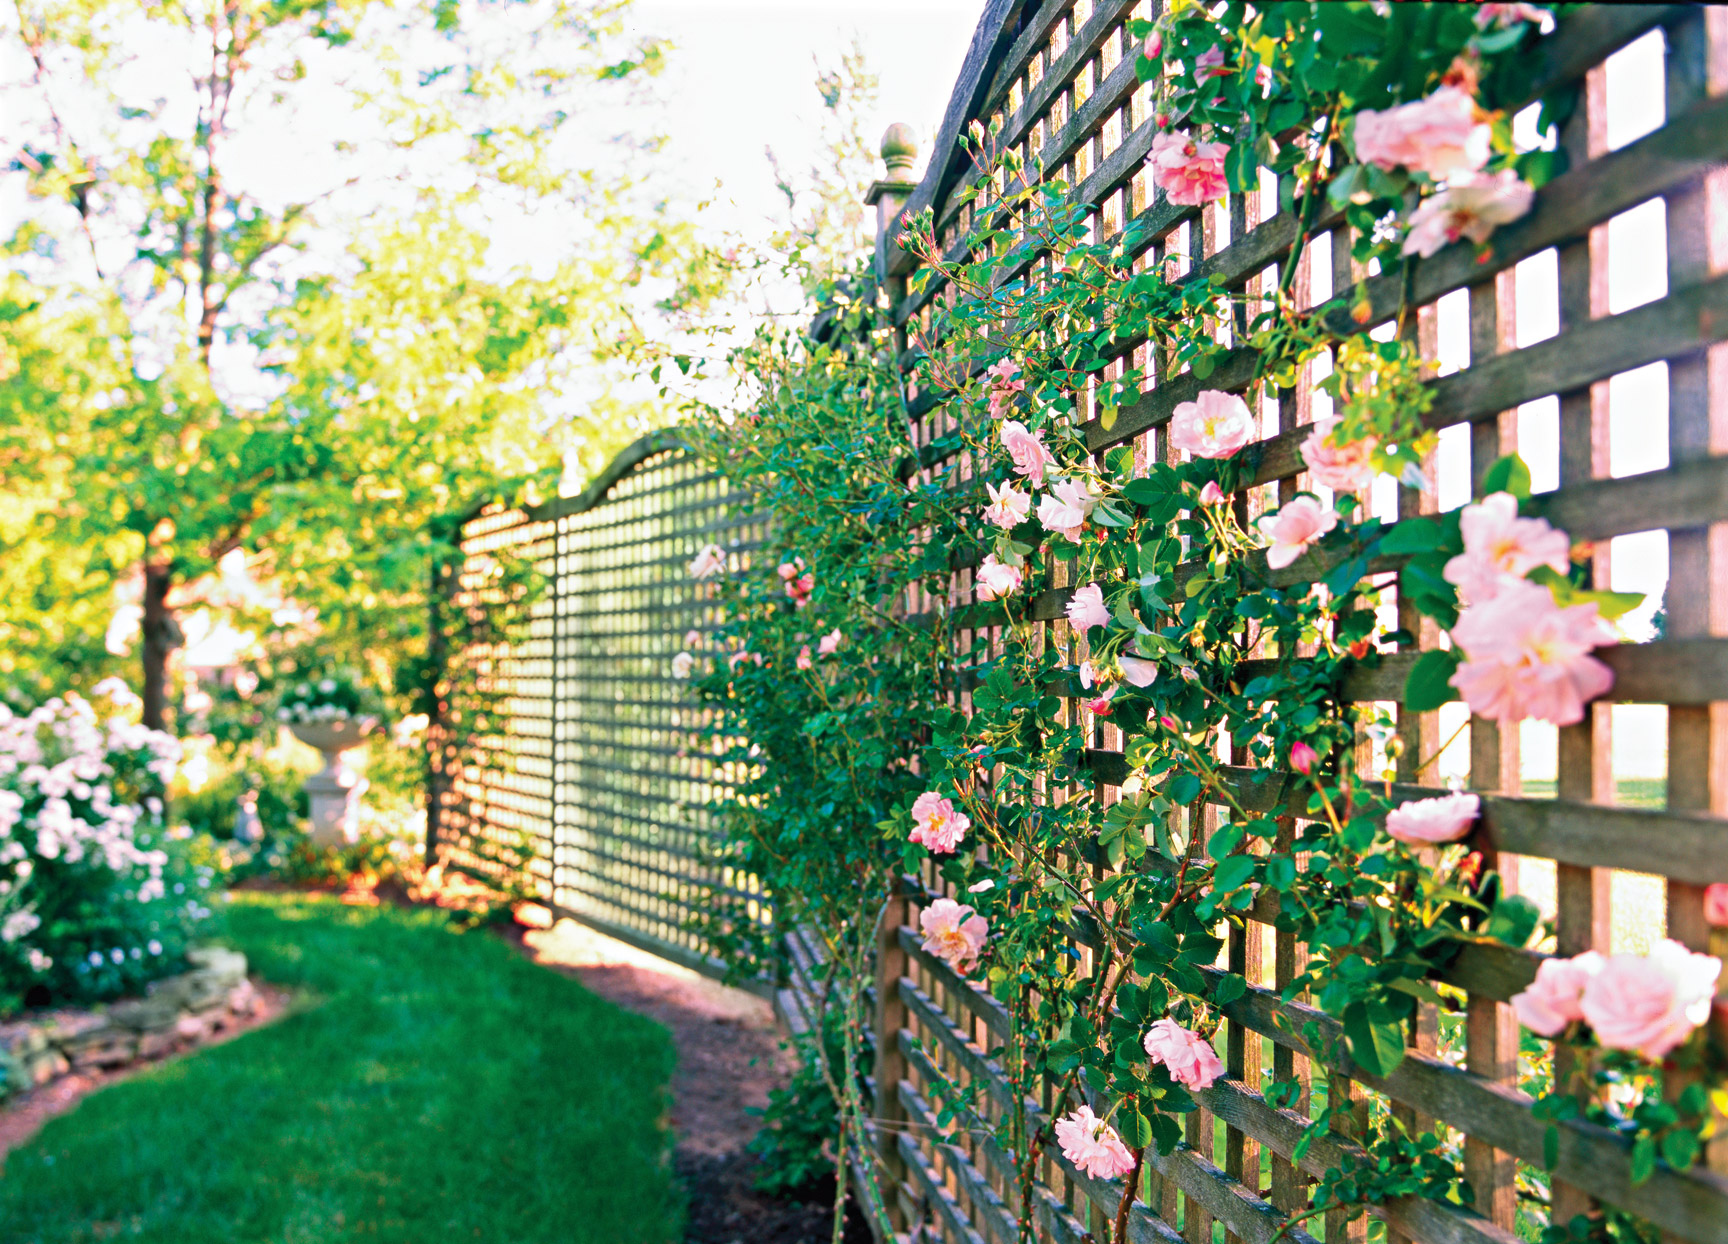 Lattice fence with pink flowers